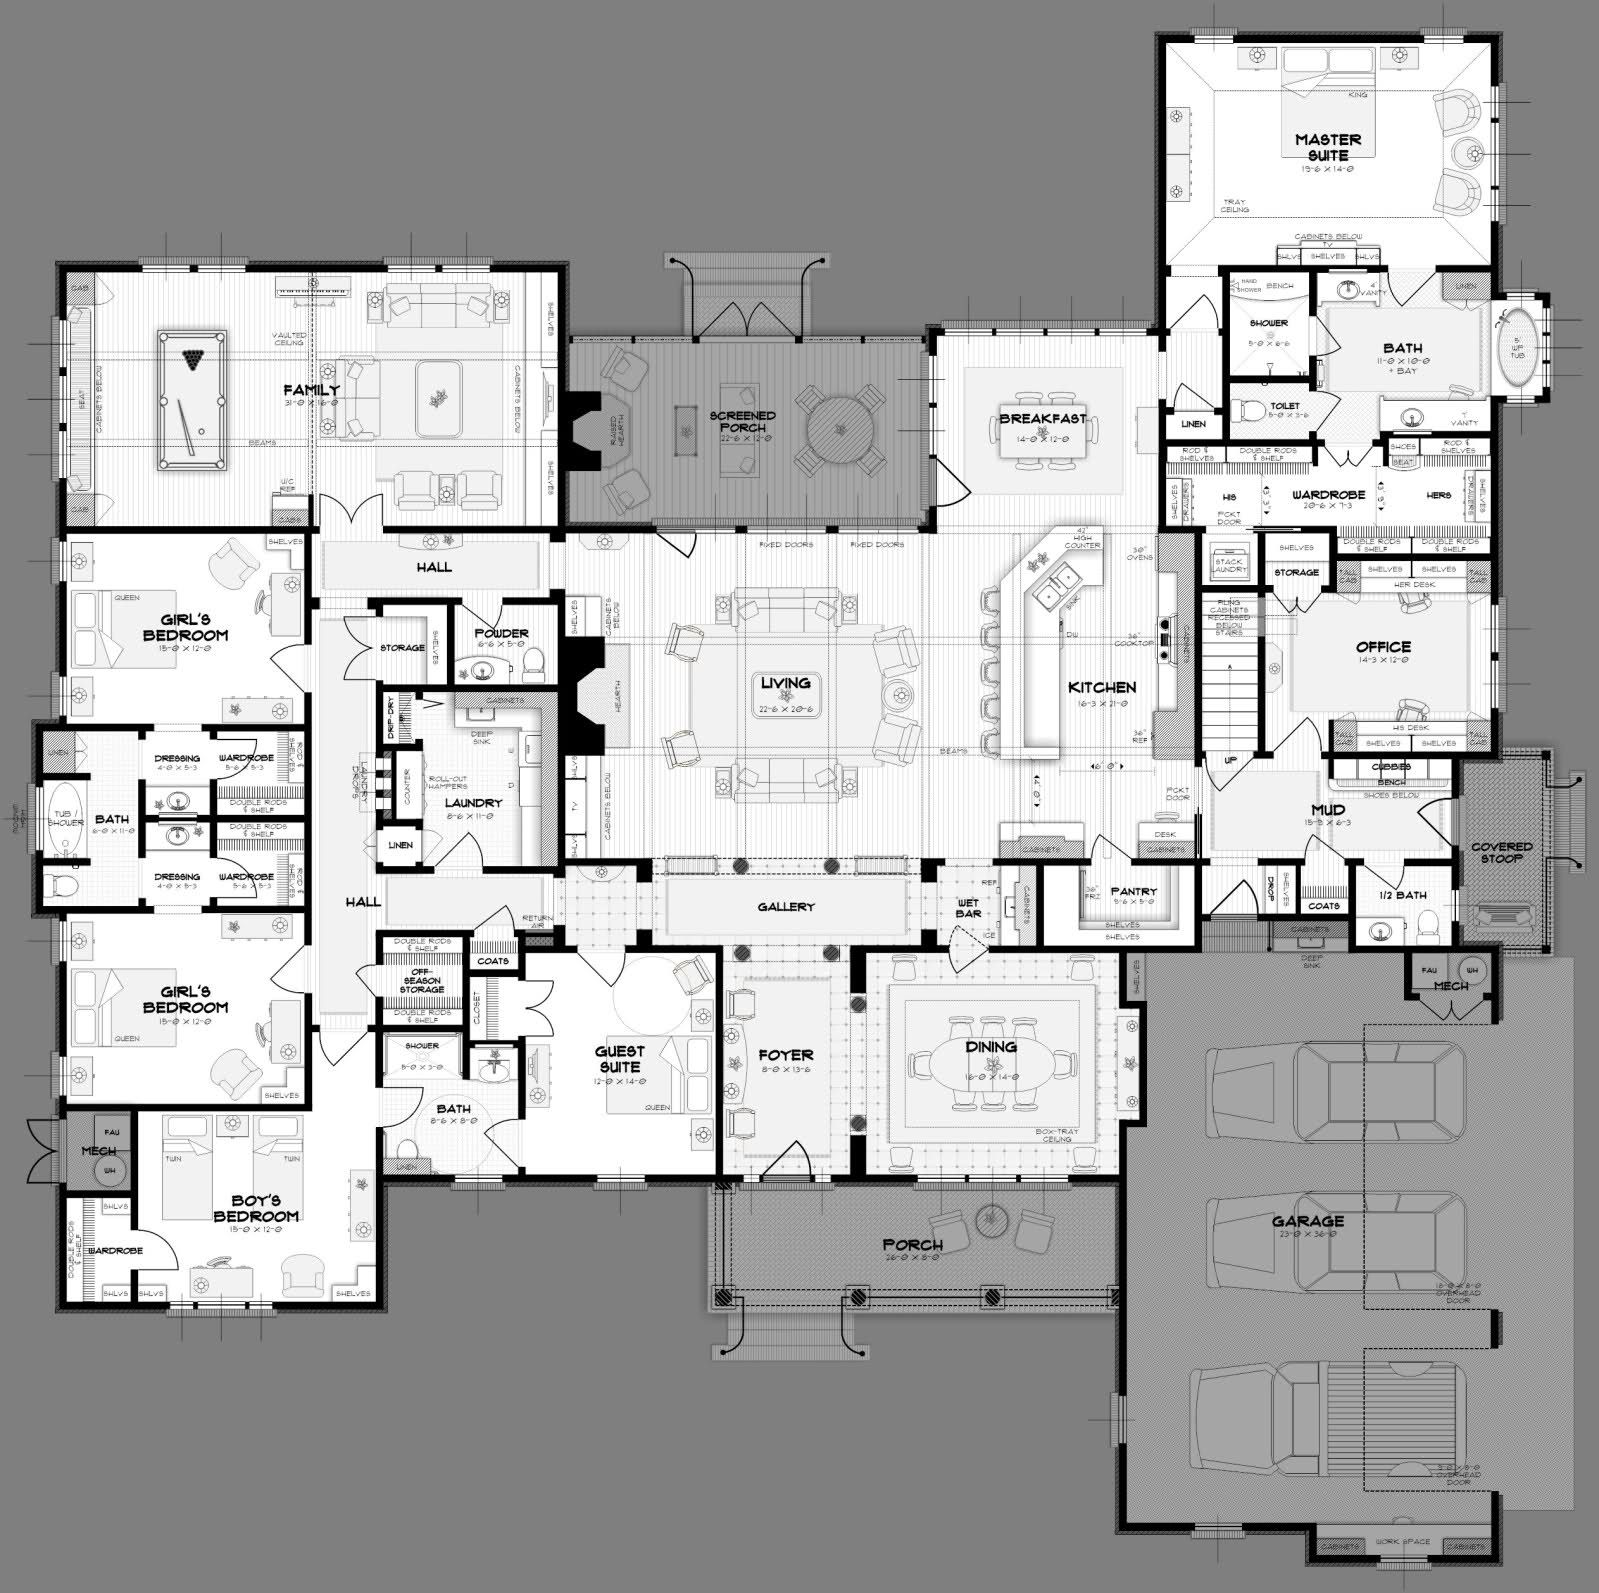 Big 5 bedroom house plans way more space than we need but awesome layout you could host guests and have lots of family over